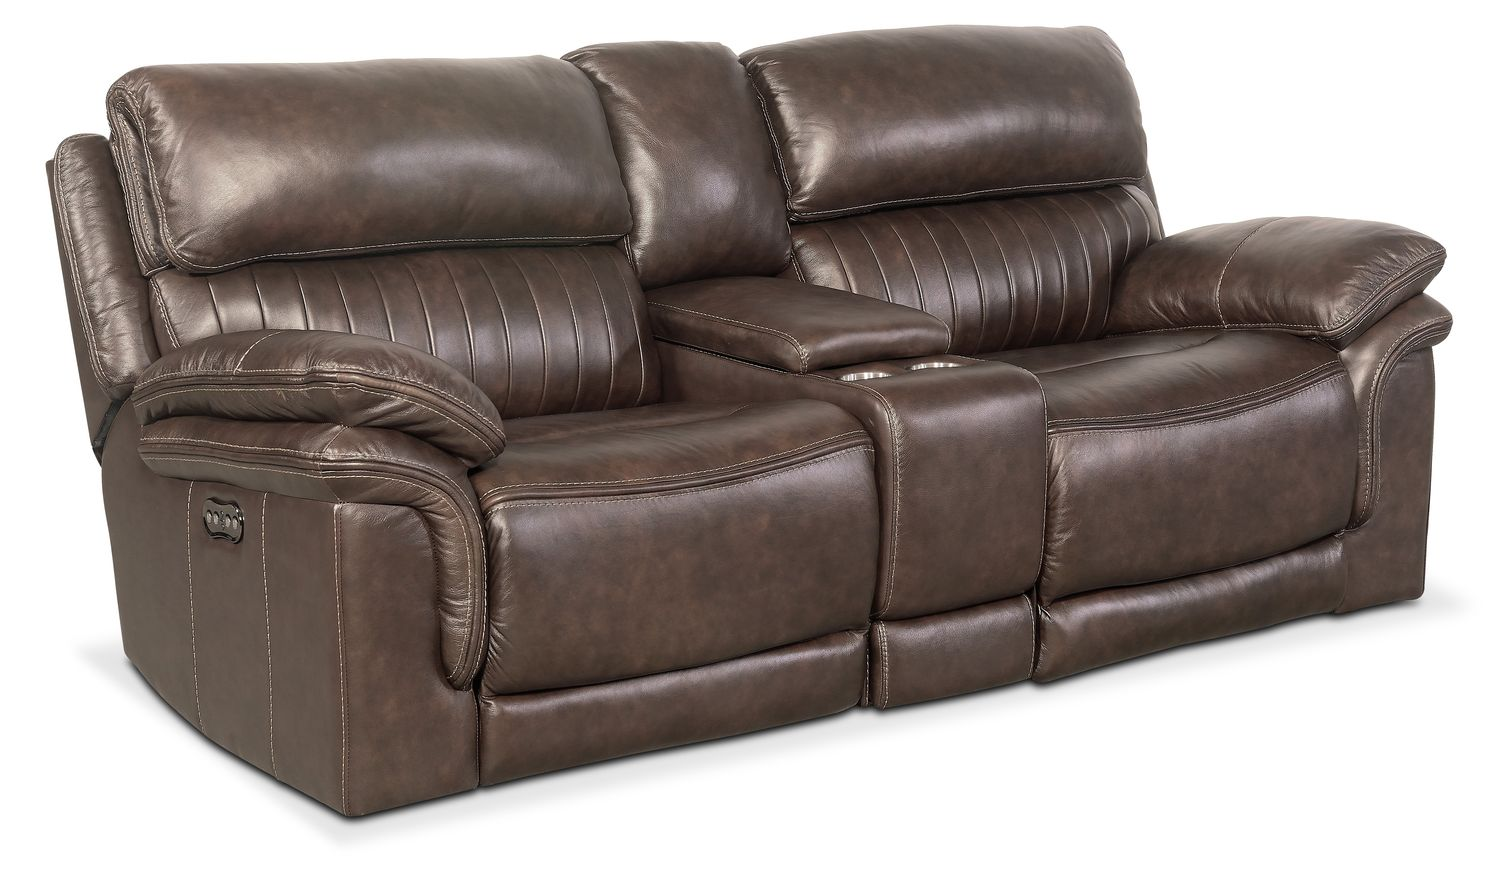 Living Room Furniture - Monterey 3-Piece Power Reclining Sofa with Console